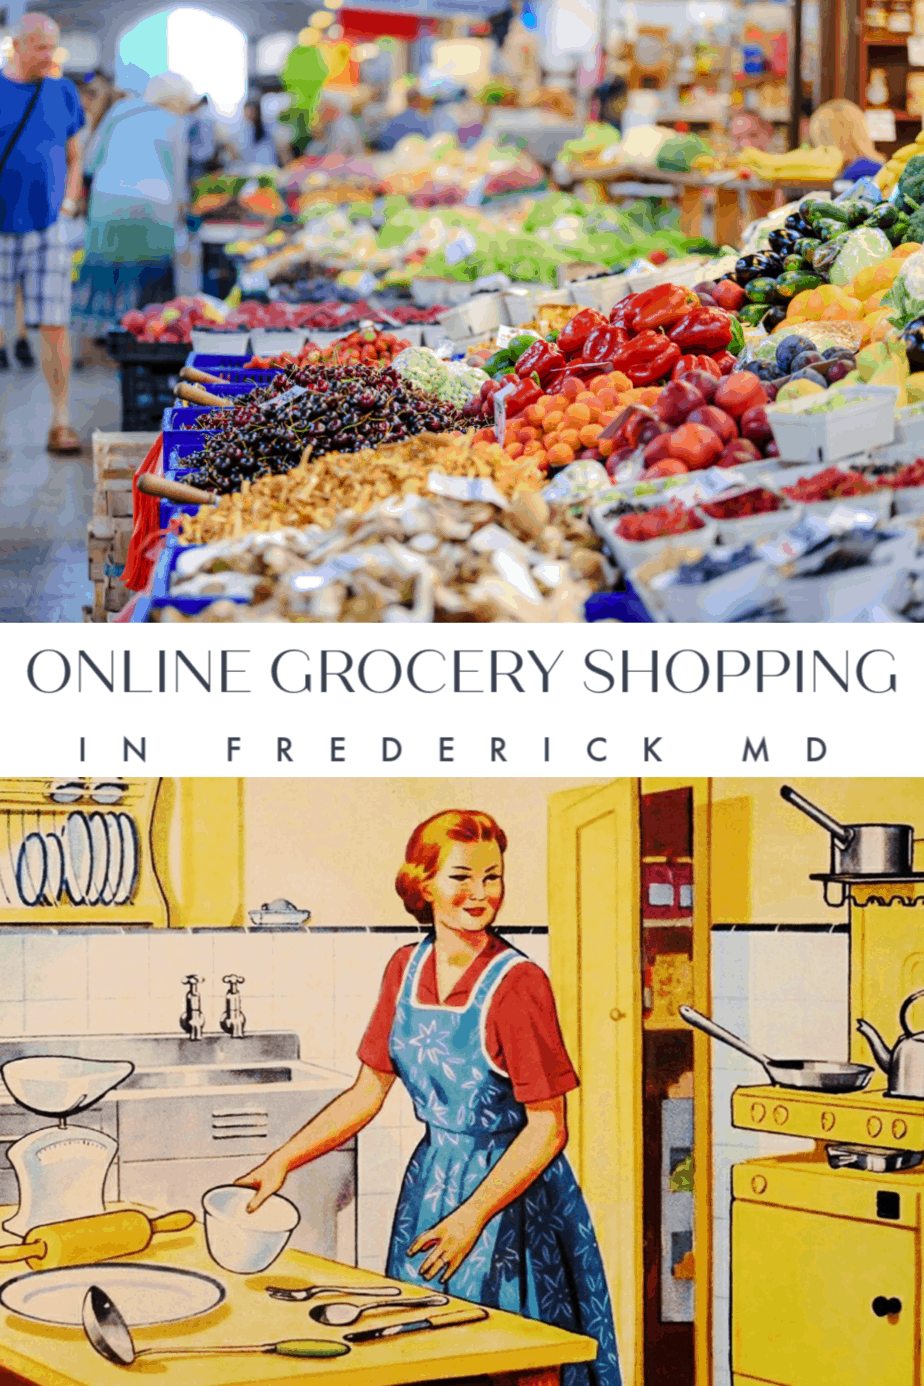 Online Grocery Shopping in Frederick, Md